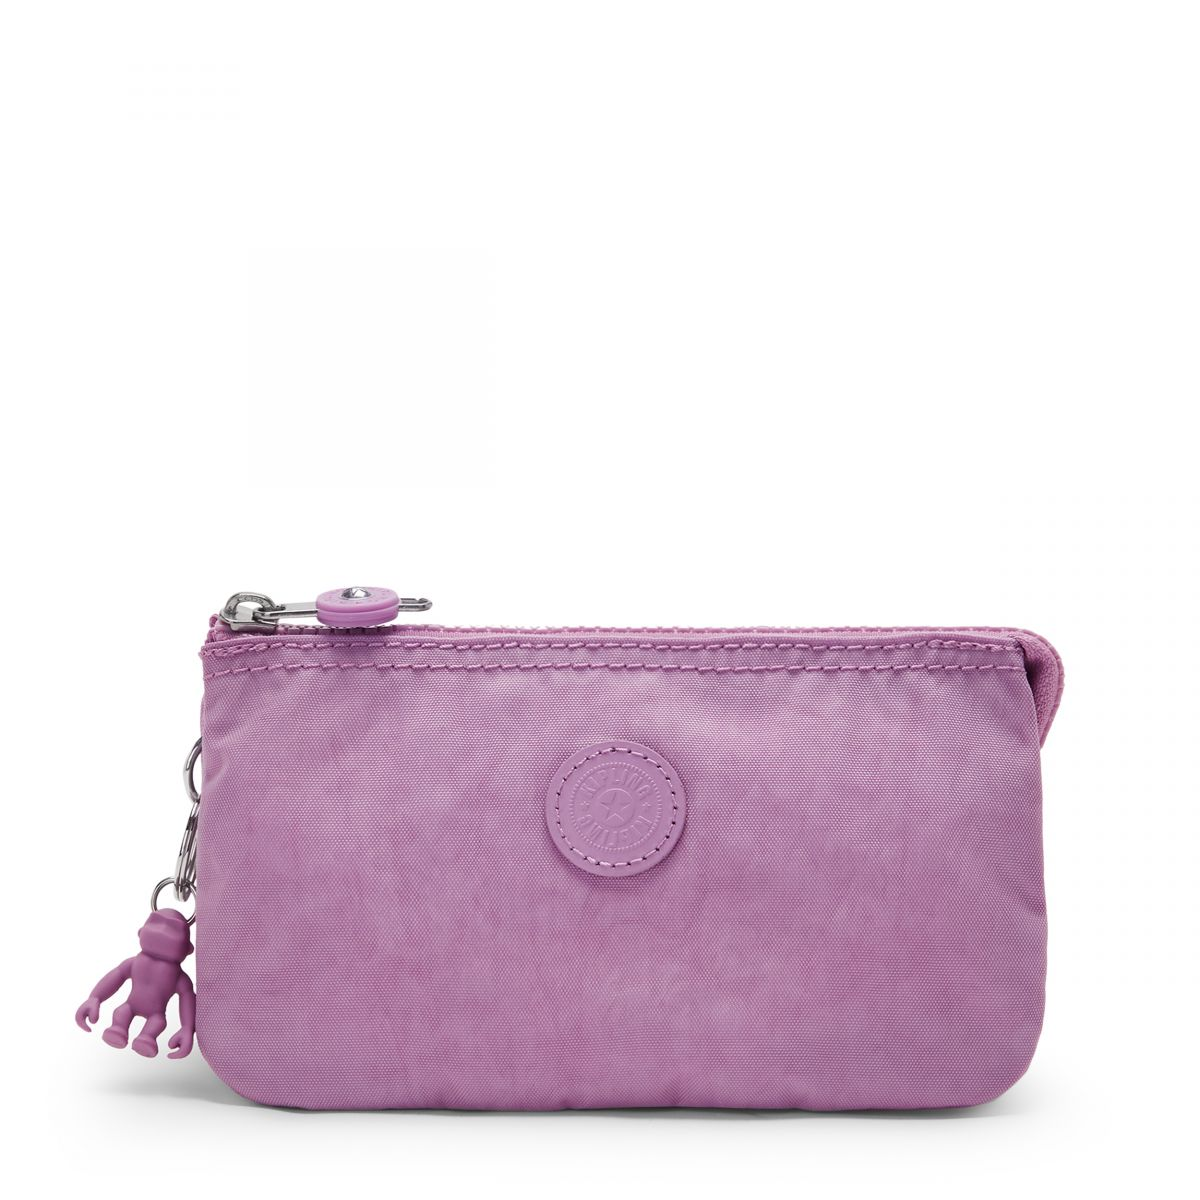 CREATIVITY L ACCESSORIES by Kipling - Front view